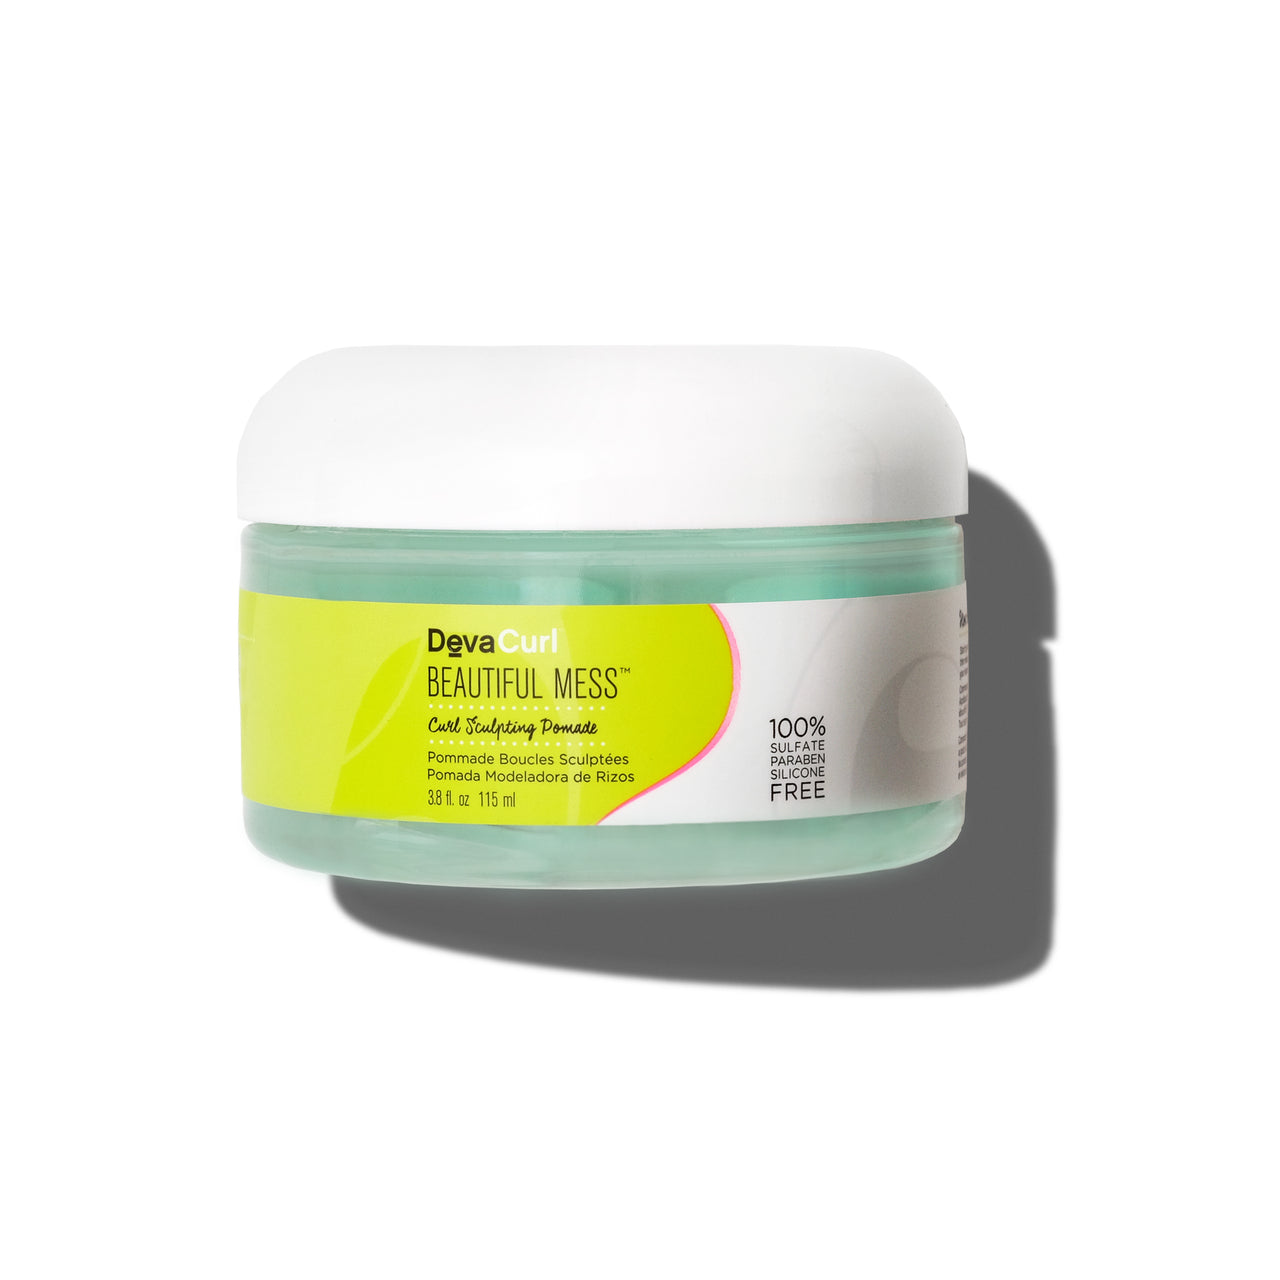 DevaCurl Beautiful Mess curl sculptinh pomade tub